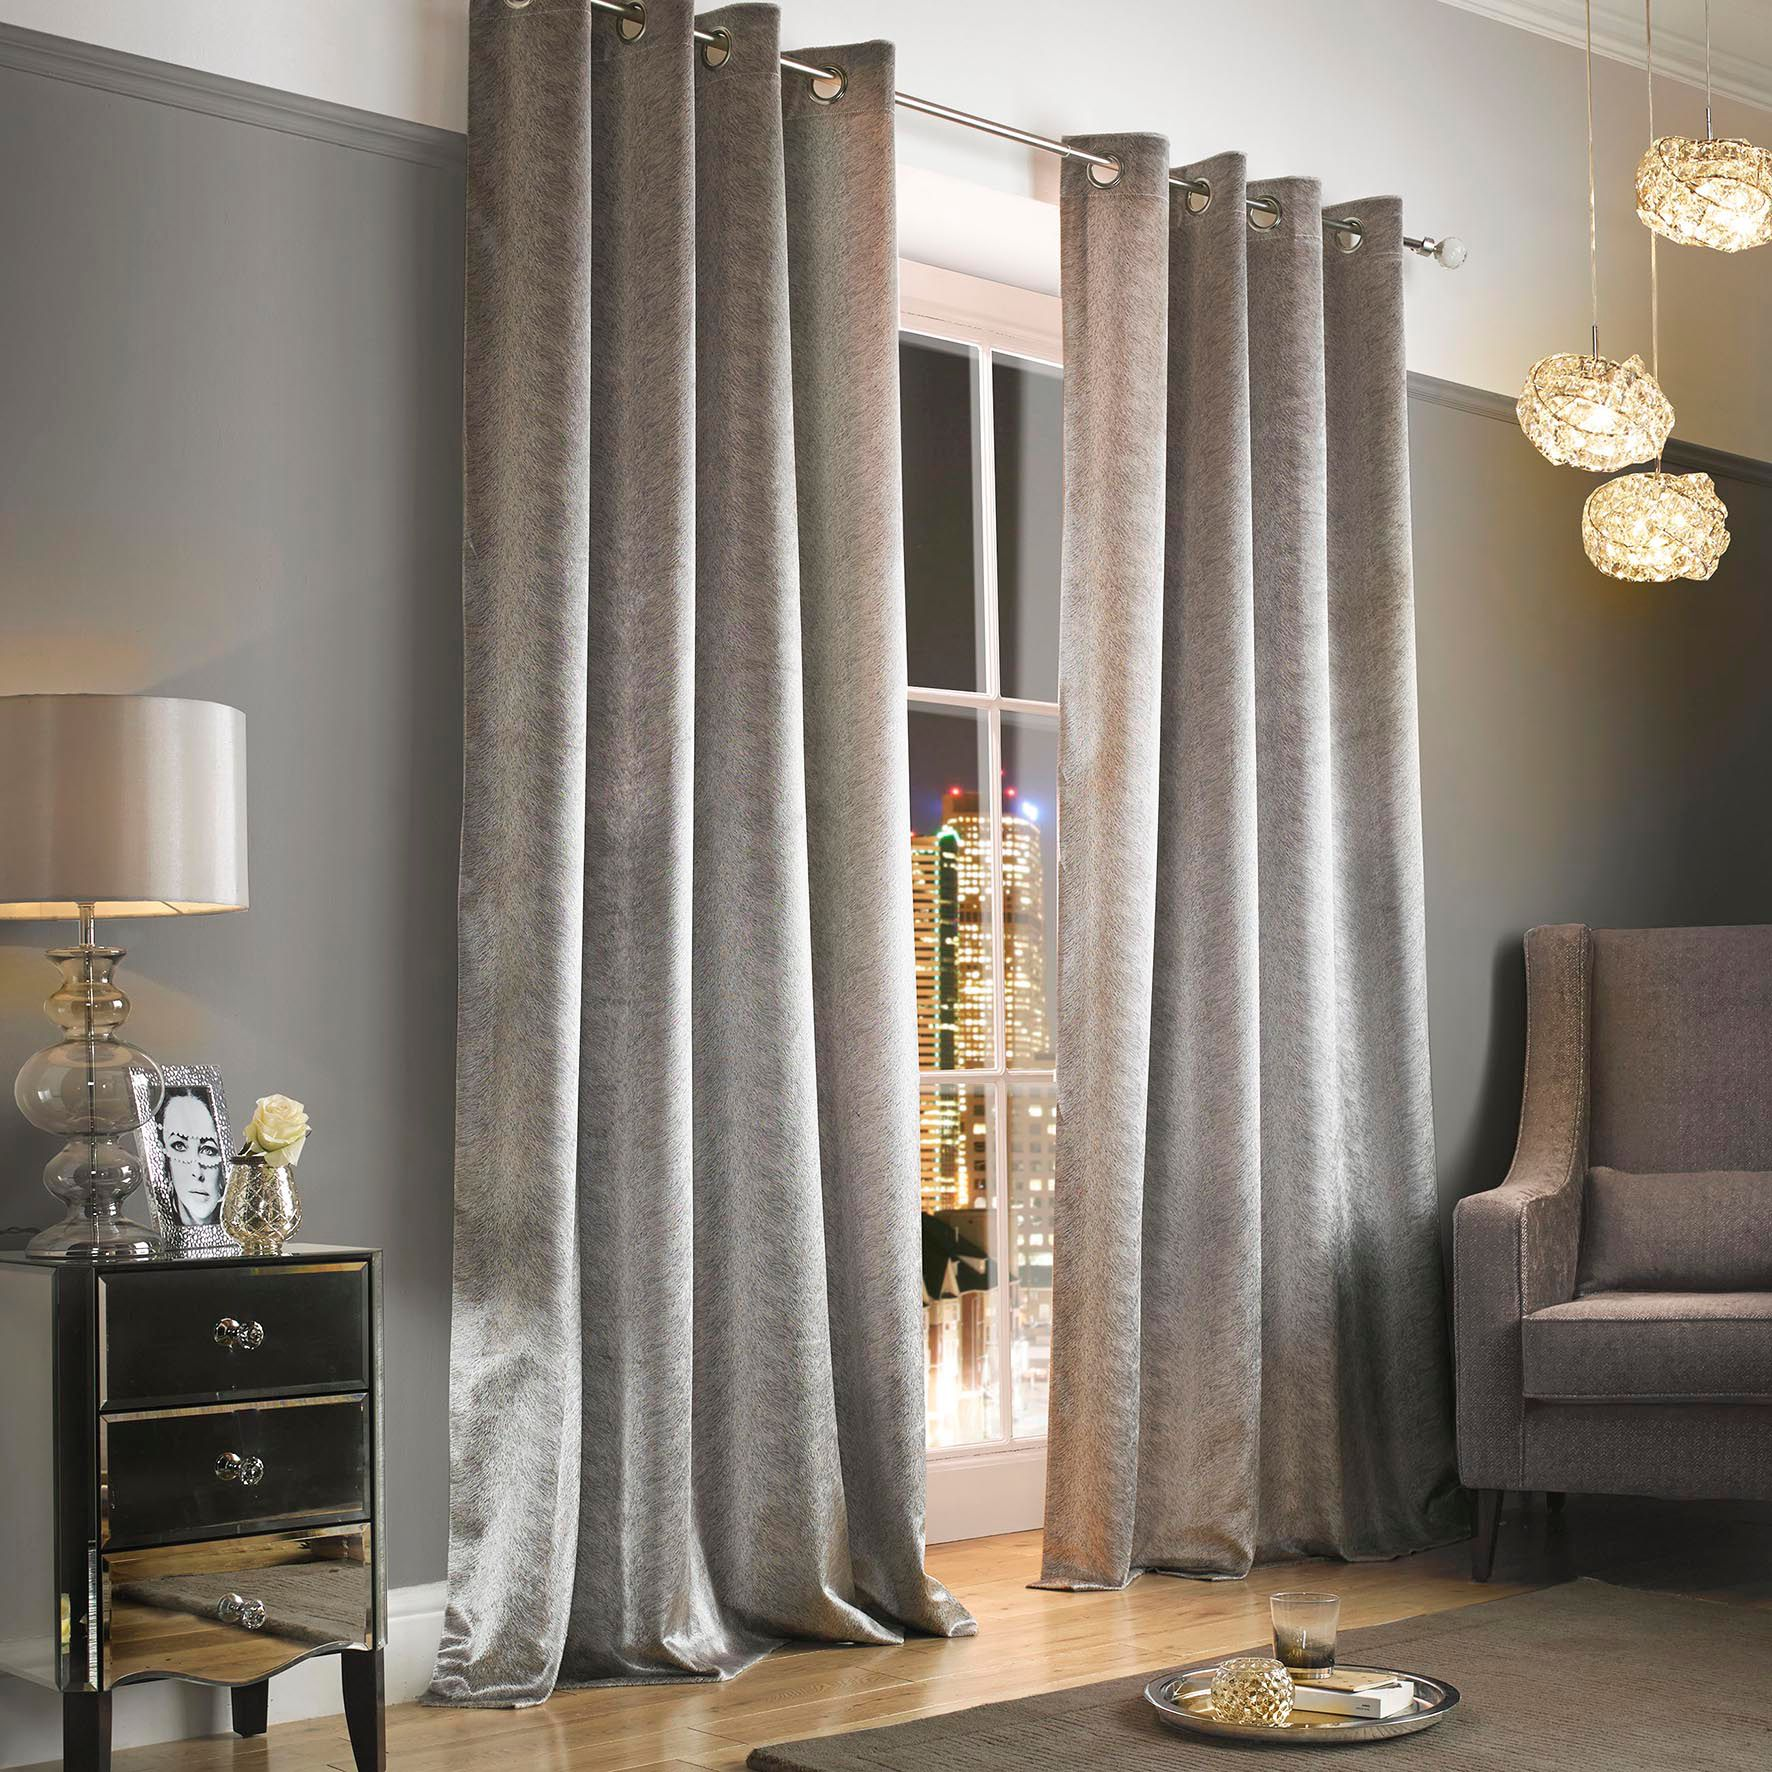 House of frazer curtains for Living room curtains 90x90